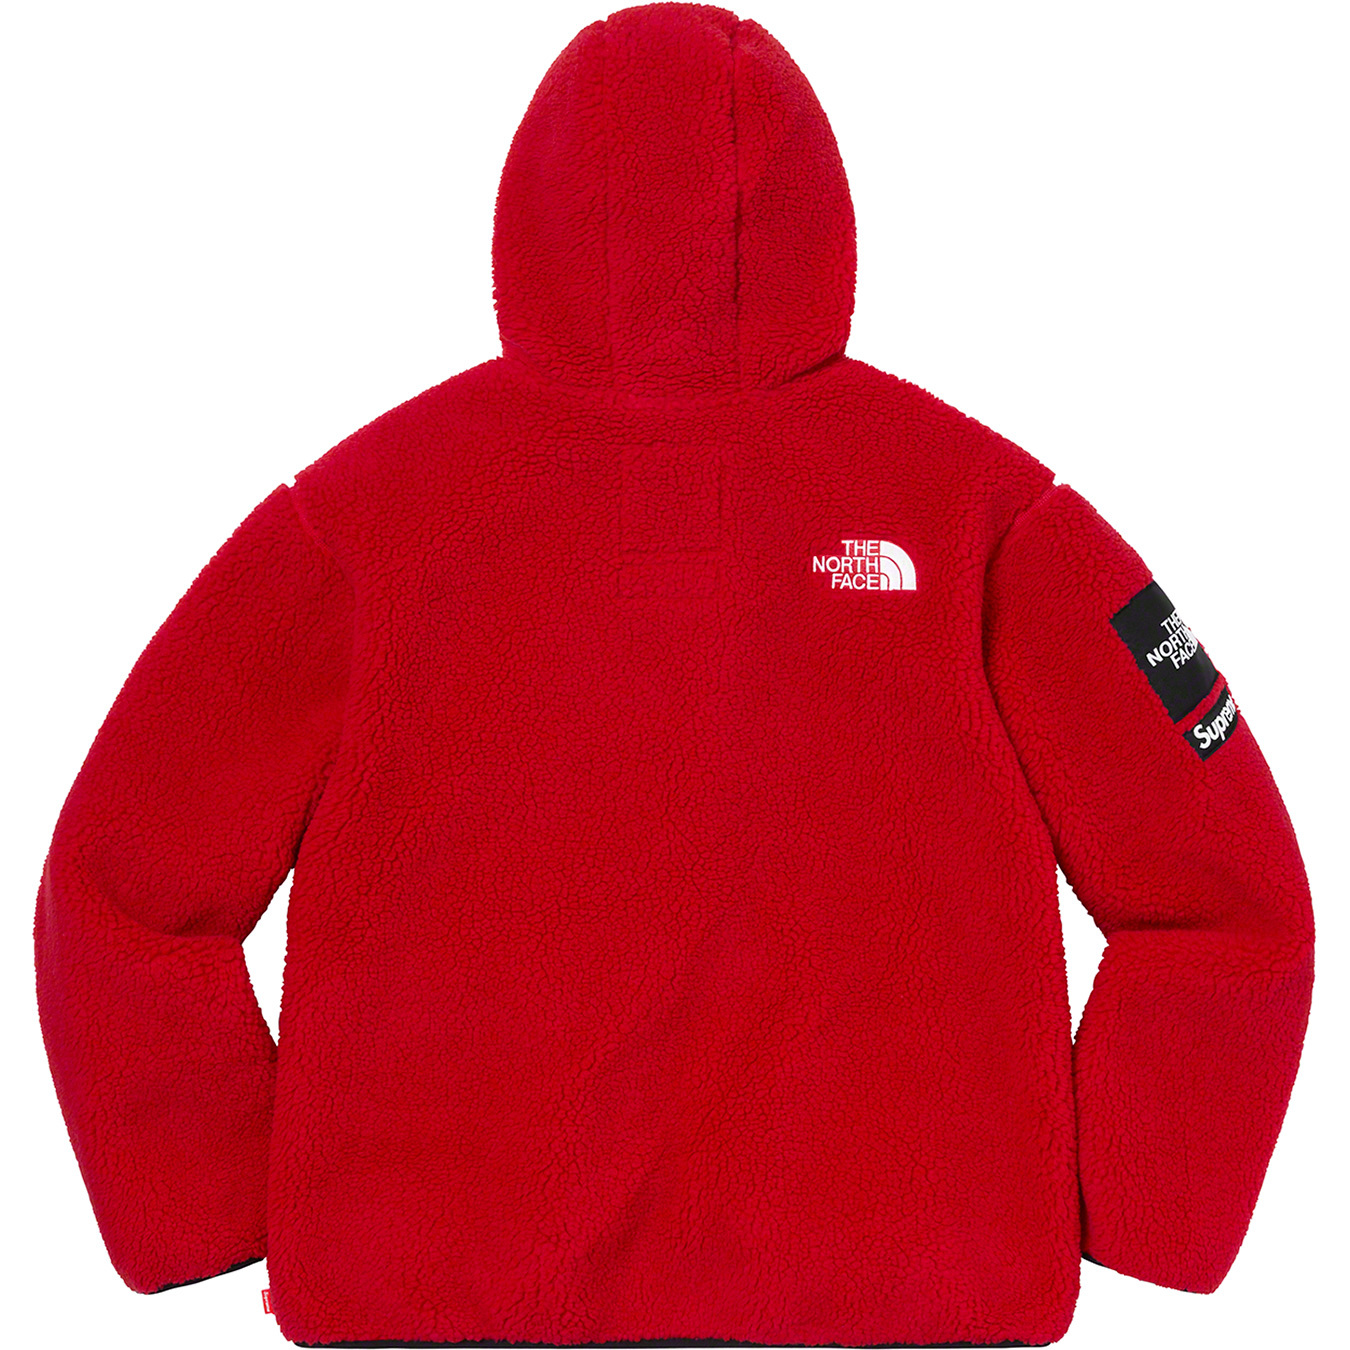 supreme-the-north-face-20aw-20fw-s-logo-collaboration-release-20201031-week10-hooded-fleece-jacket